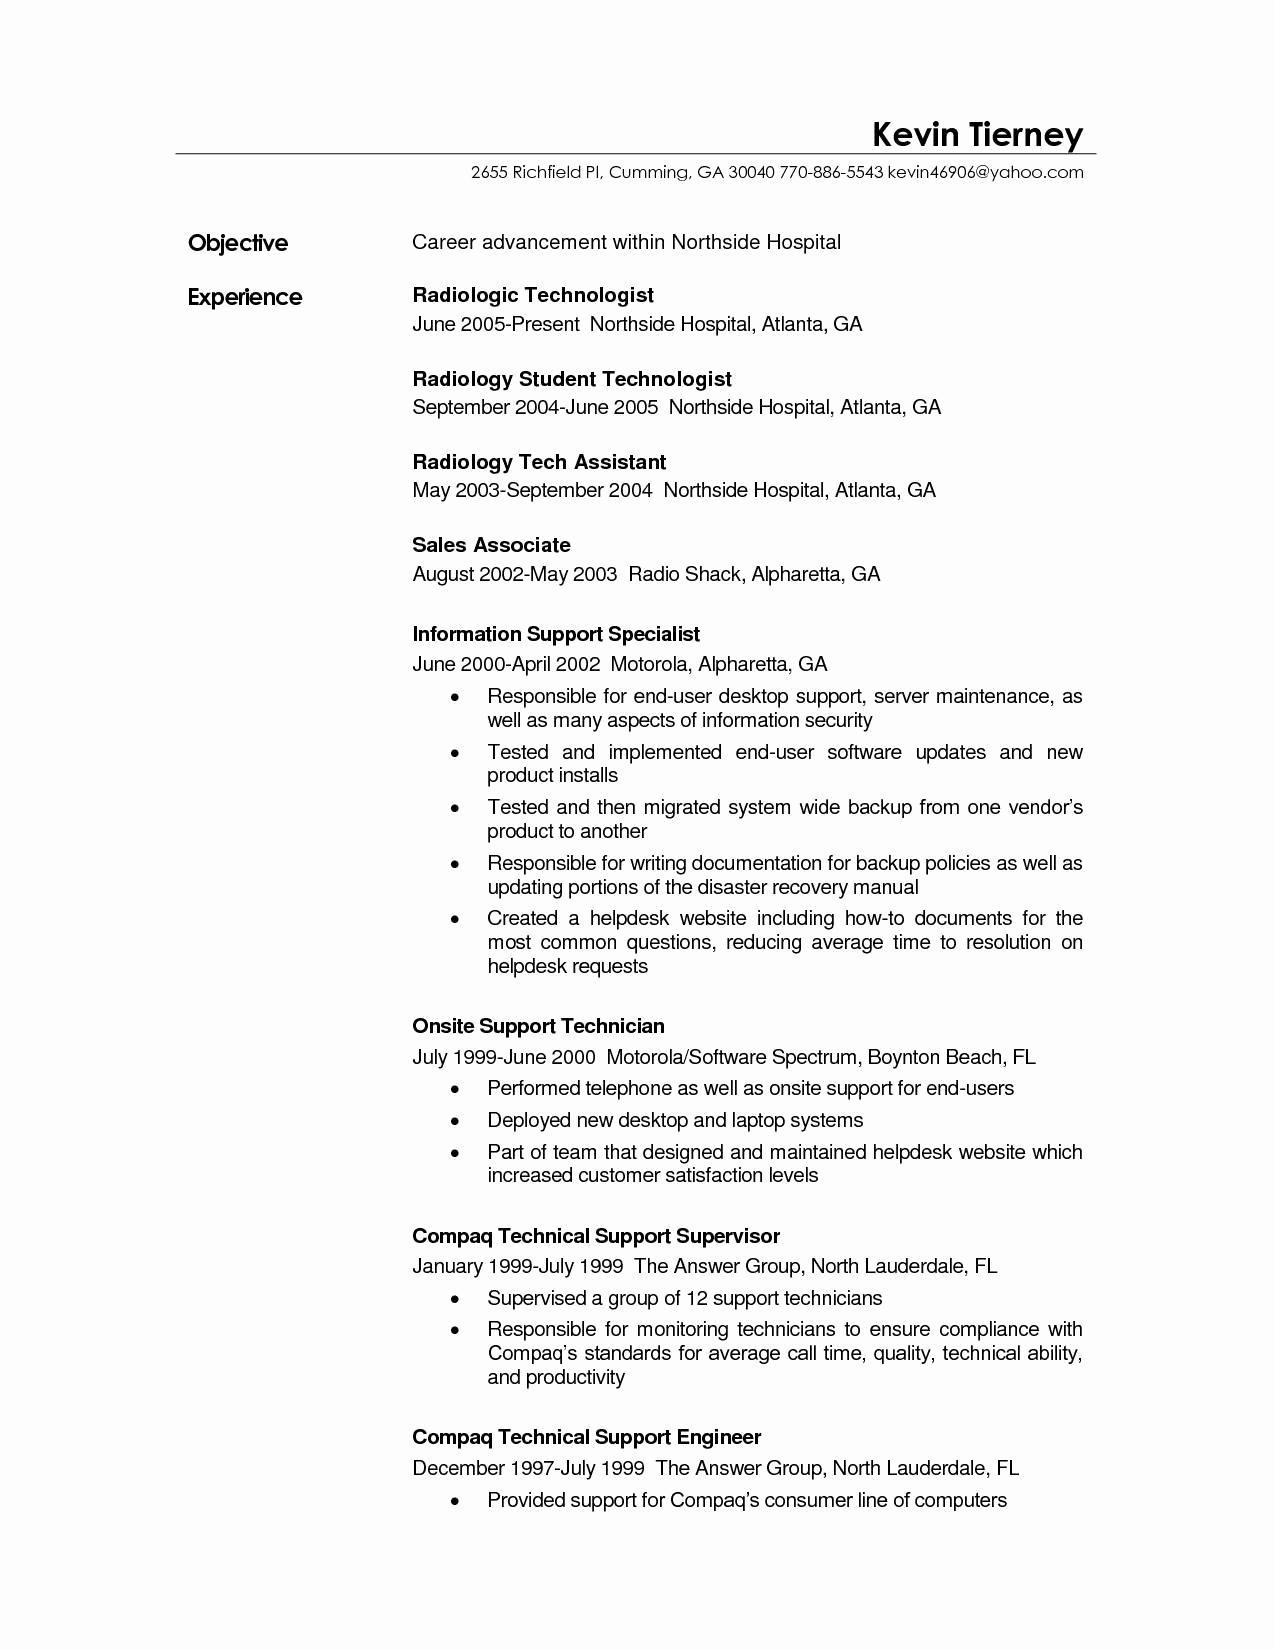 surgical technologist resume template example-37 Fresh Surgical Tech Resume Sample 4-l